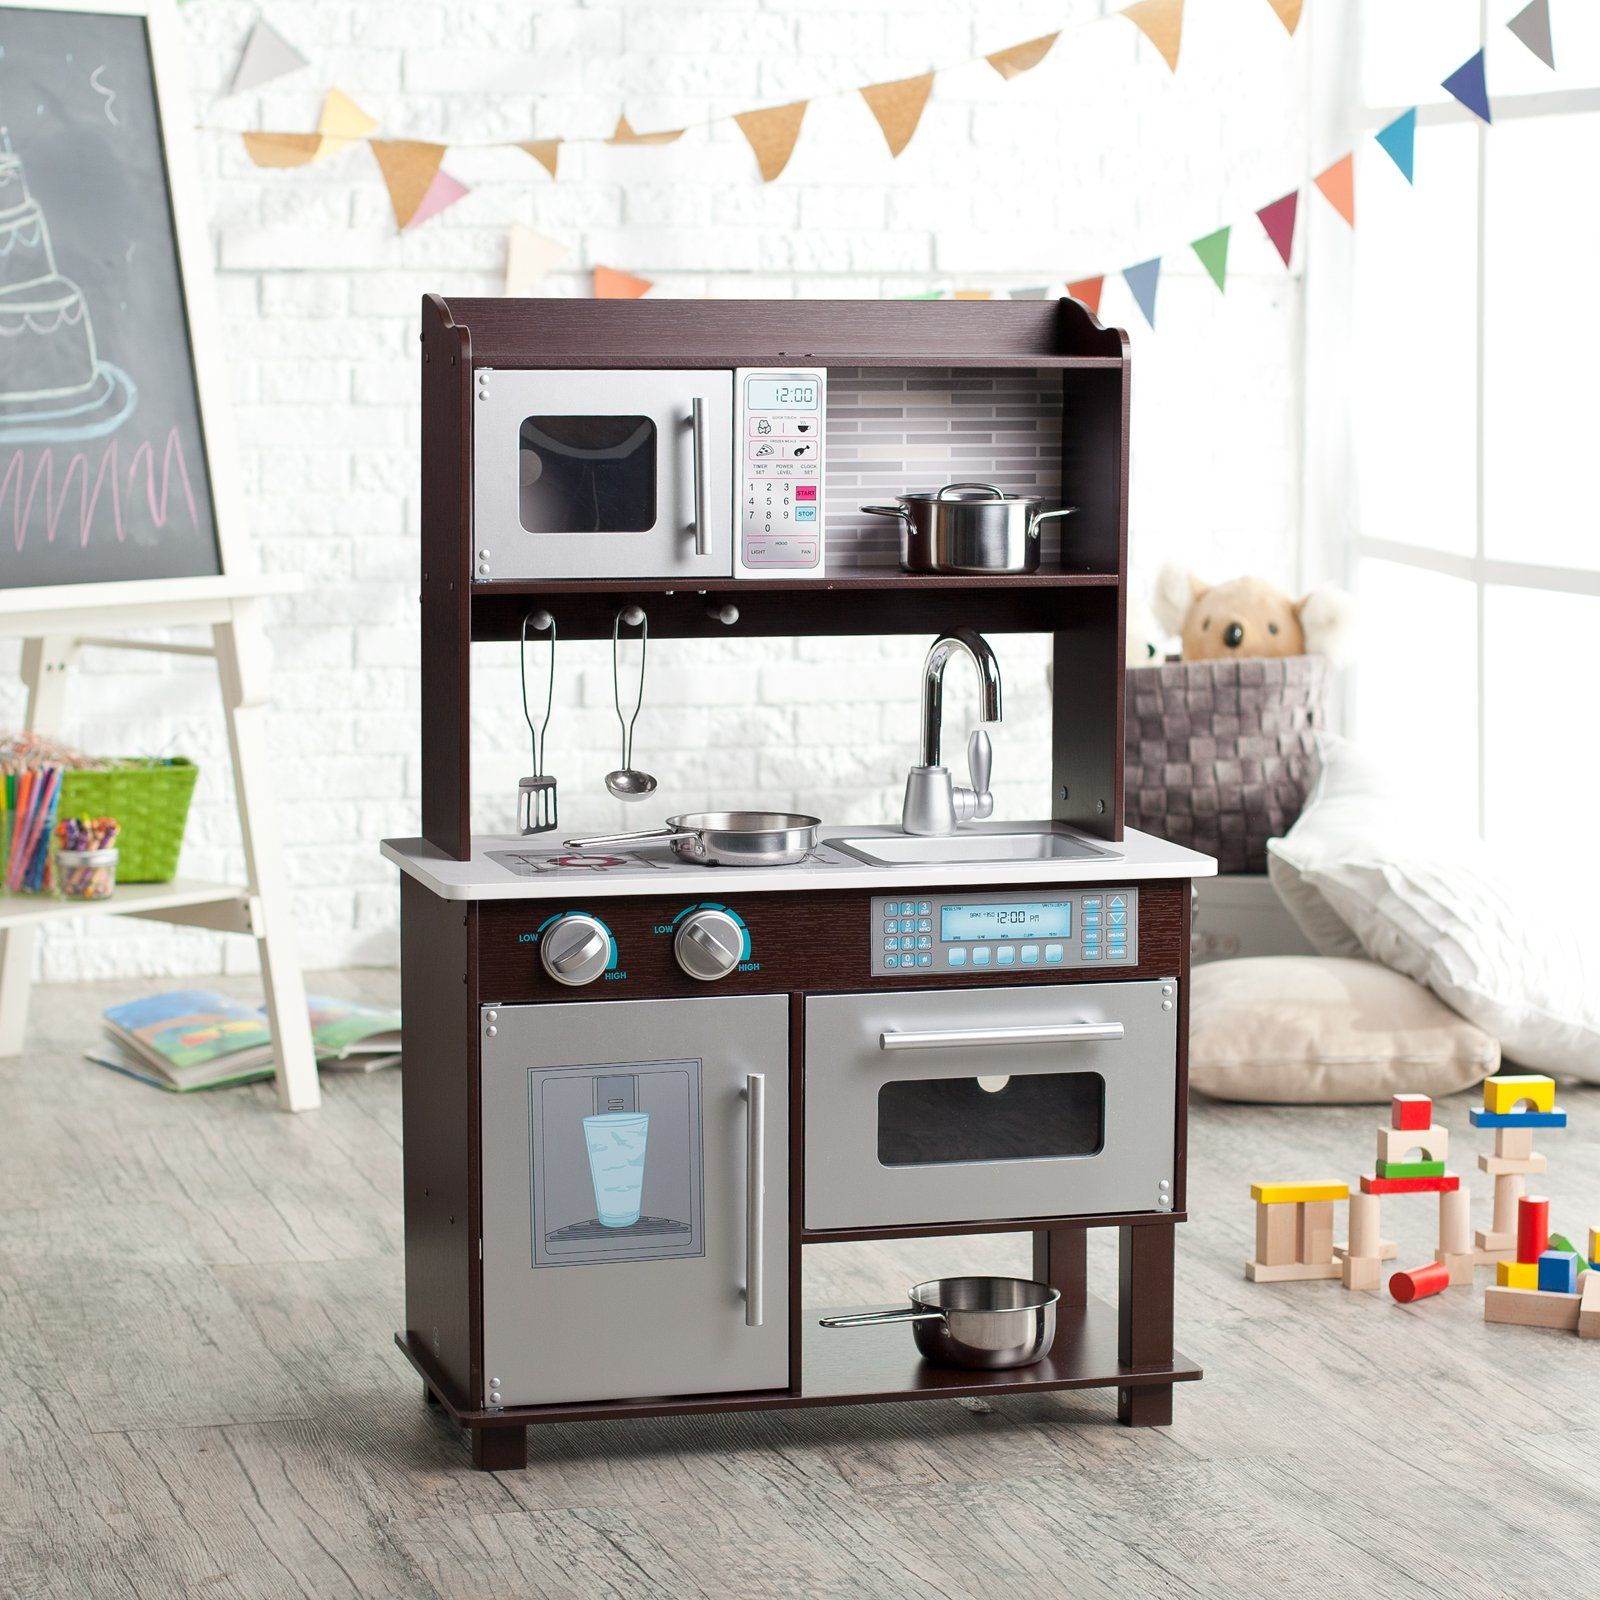 Charming KidKraft Espresso Toddler Play Kitchen With Metal Accessory Set   $99.98